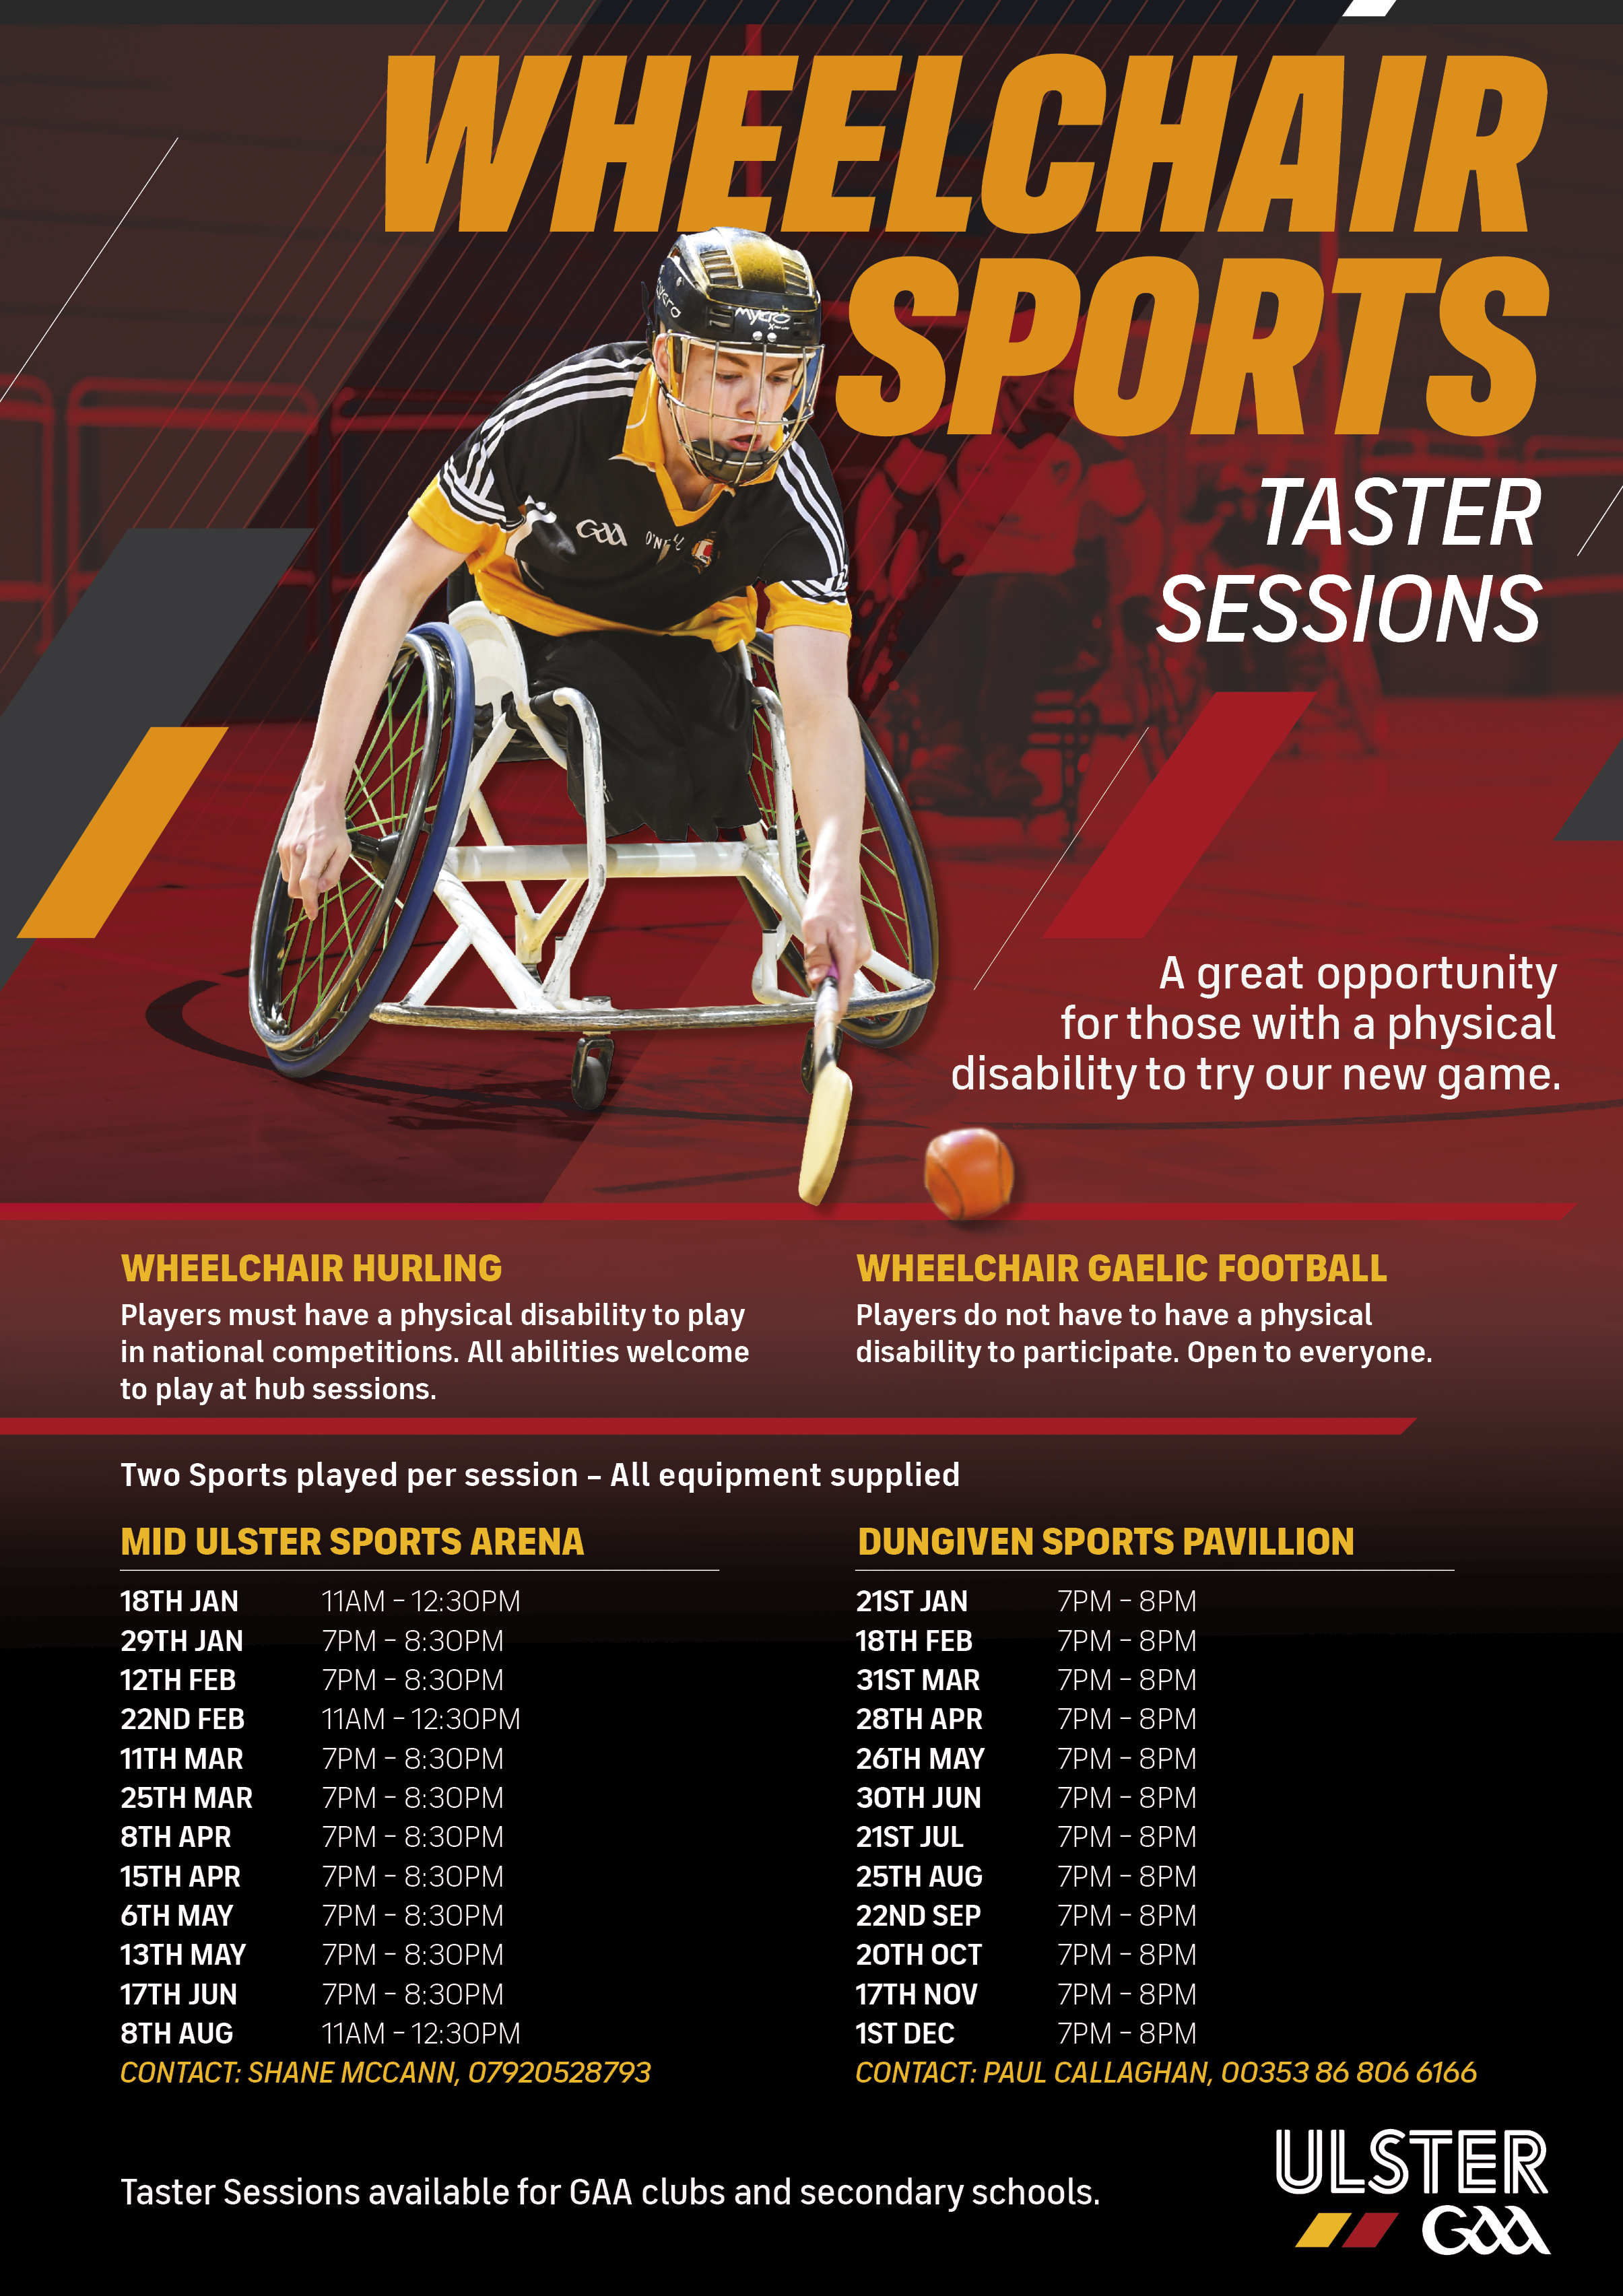 Further information and dates for wheelchair hurling taster sessions. Alternative formats available upon request.